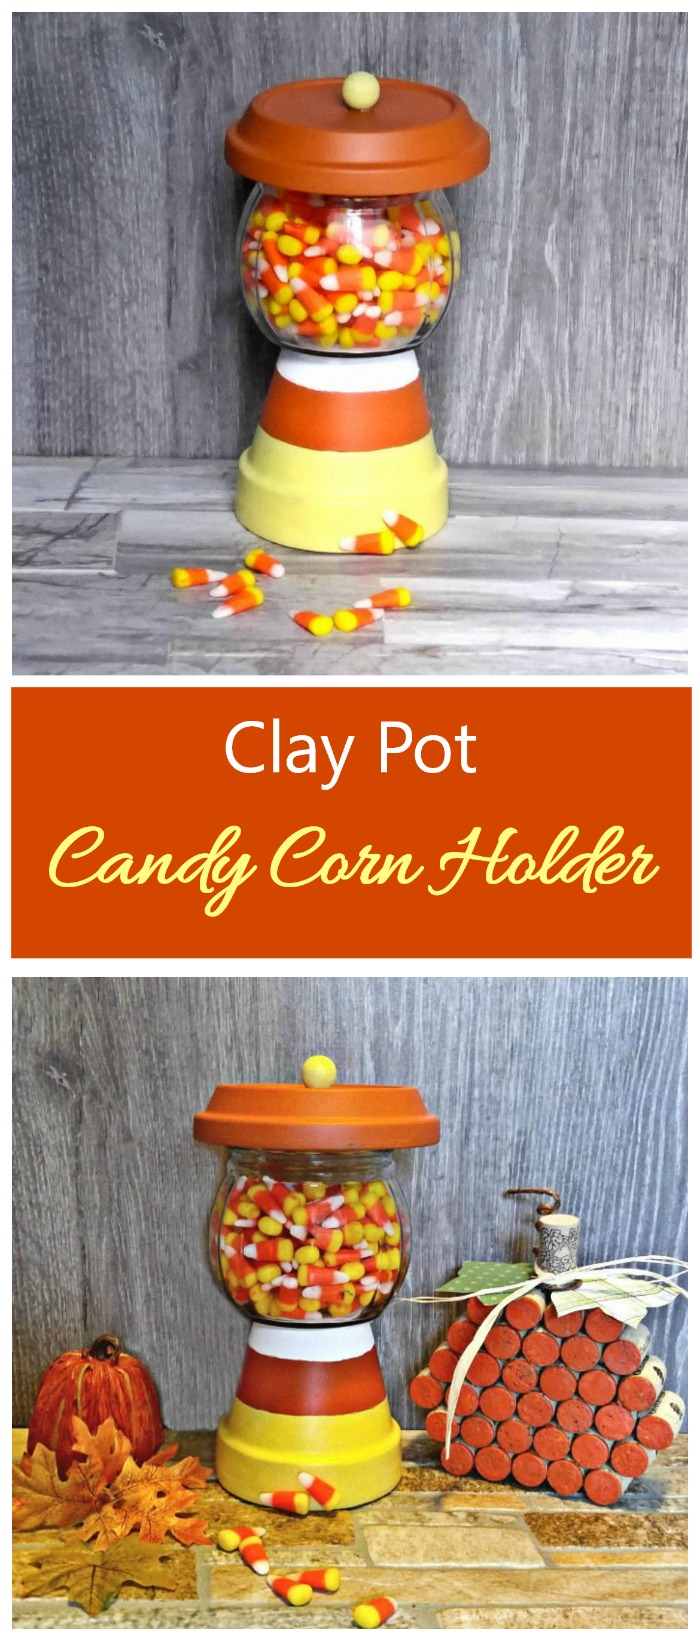 This Terracotta Candy Jar is simple to make and will delight your neighborhood trick or treaters. #halloweendiy #claypotcrafts